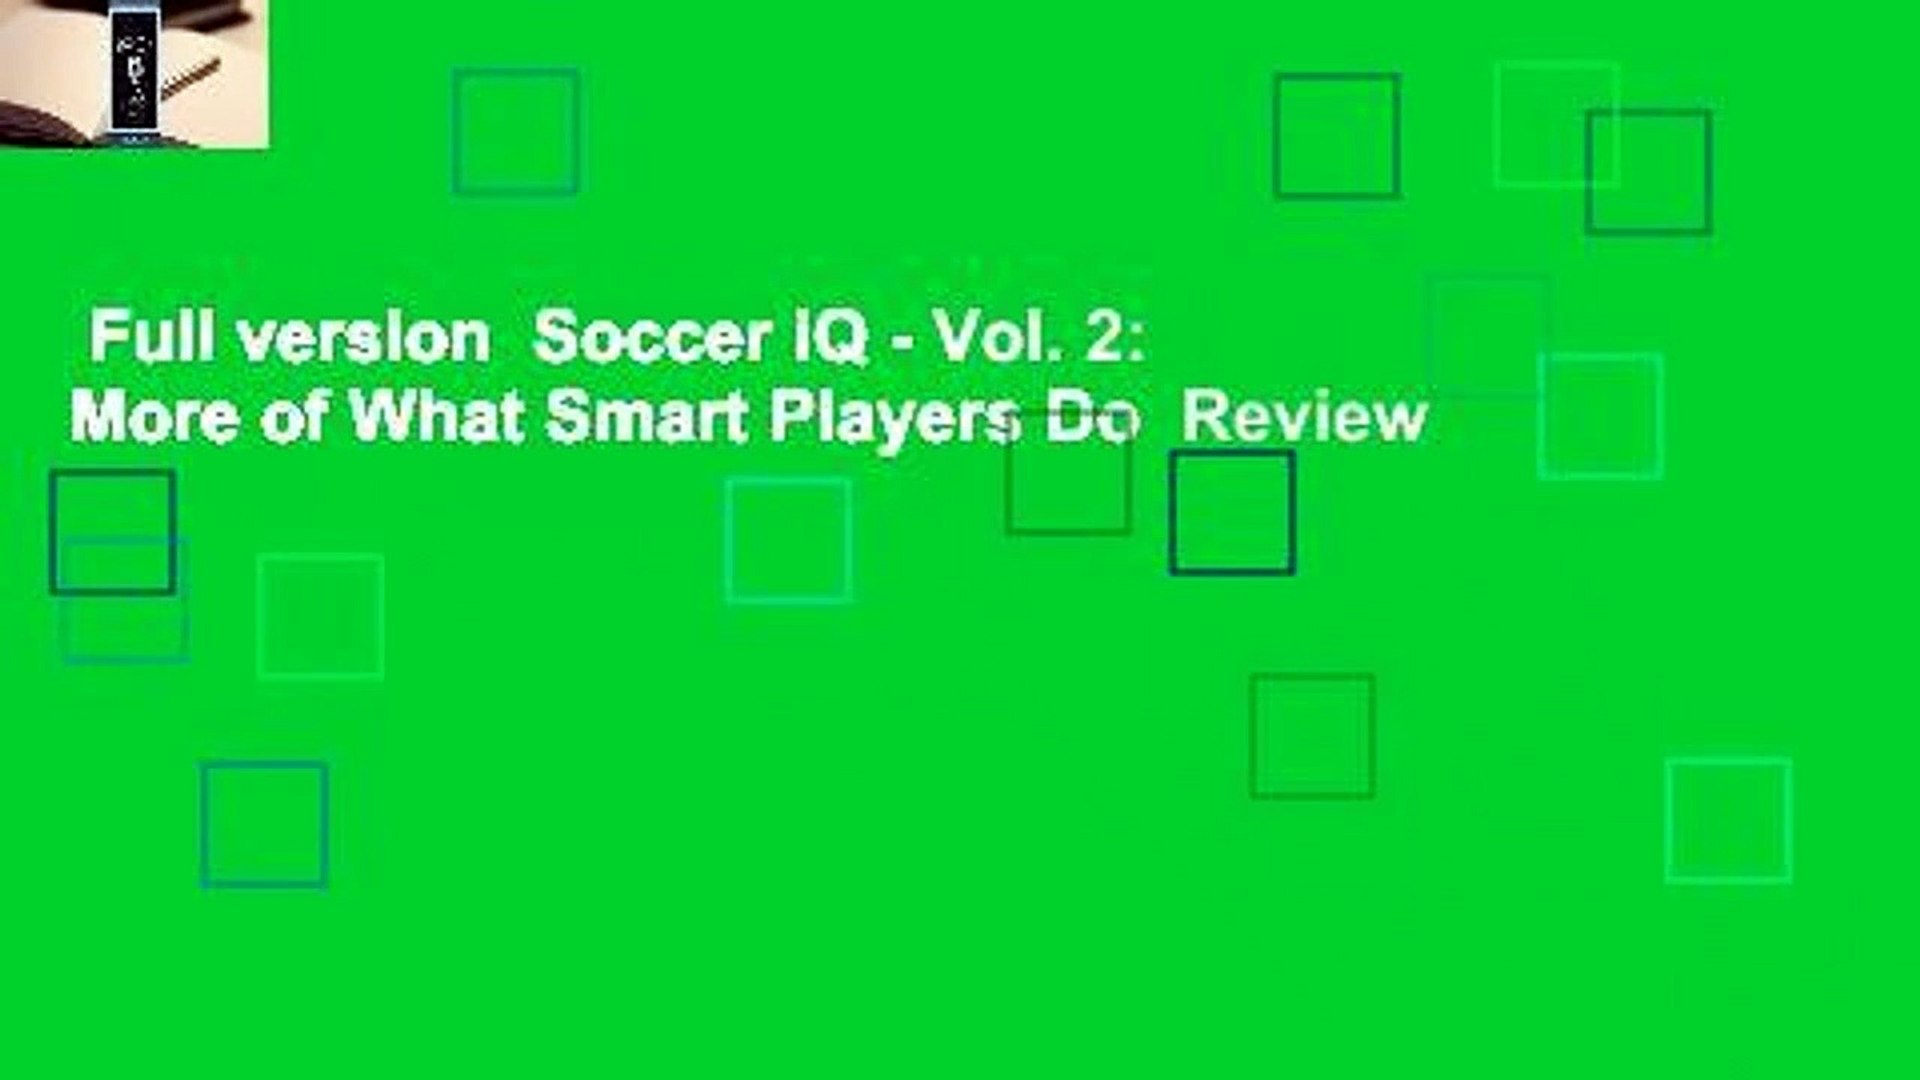 Full version  Soccer iQ - Vol. 2: More of What Smart Players Do  Review